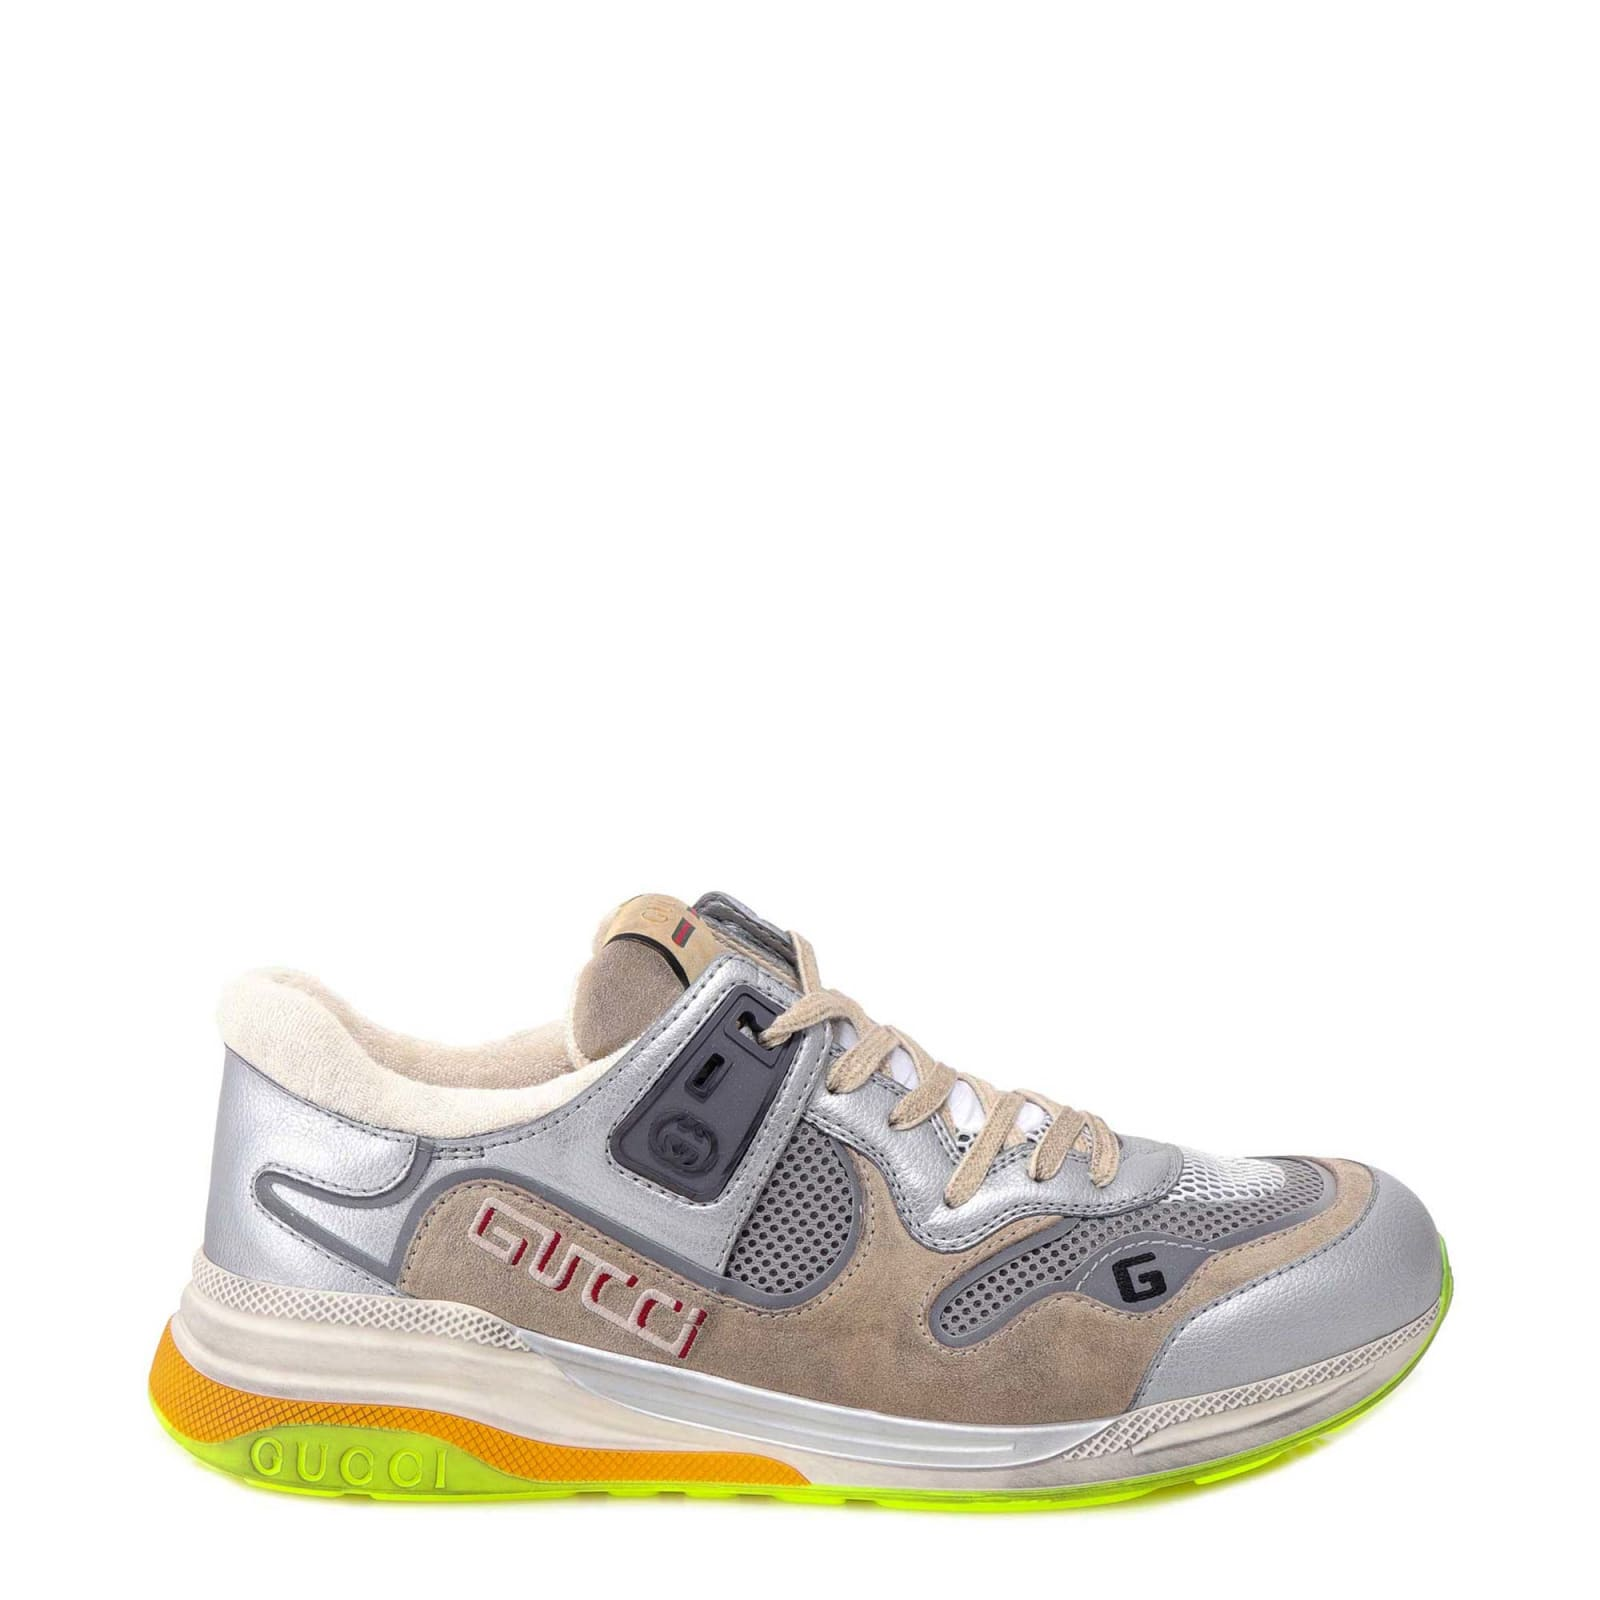 Gucci Ultrapace Sneakers